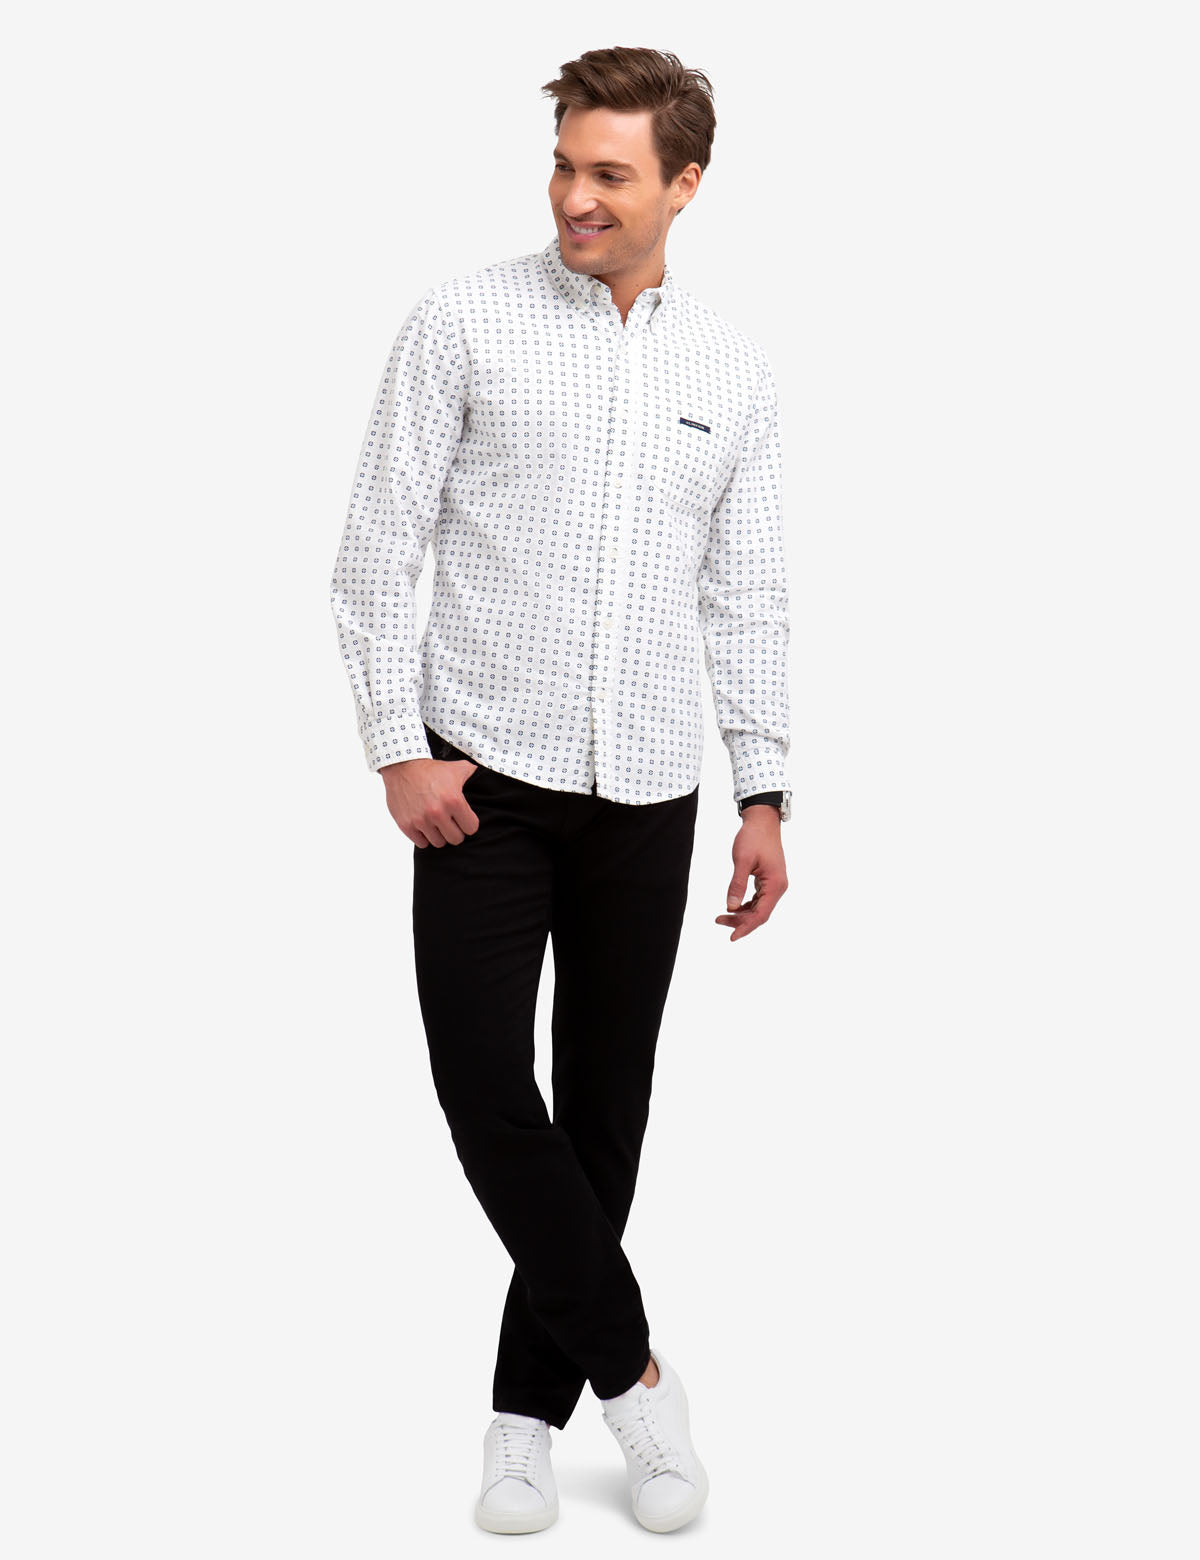 NO-TUCK GEOMETRIC PRINT OXFORD SHIRT. - U.S. Polo Assn.